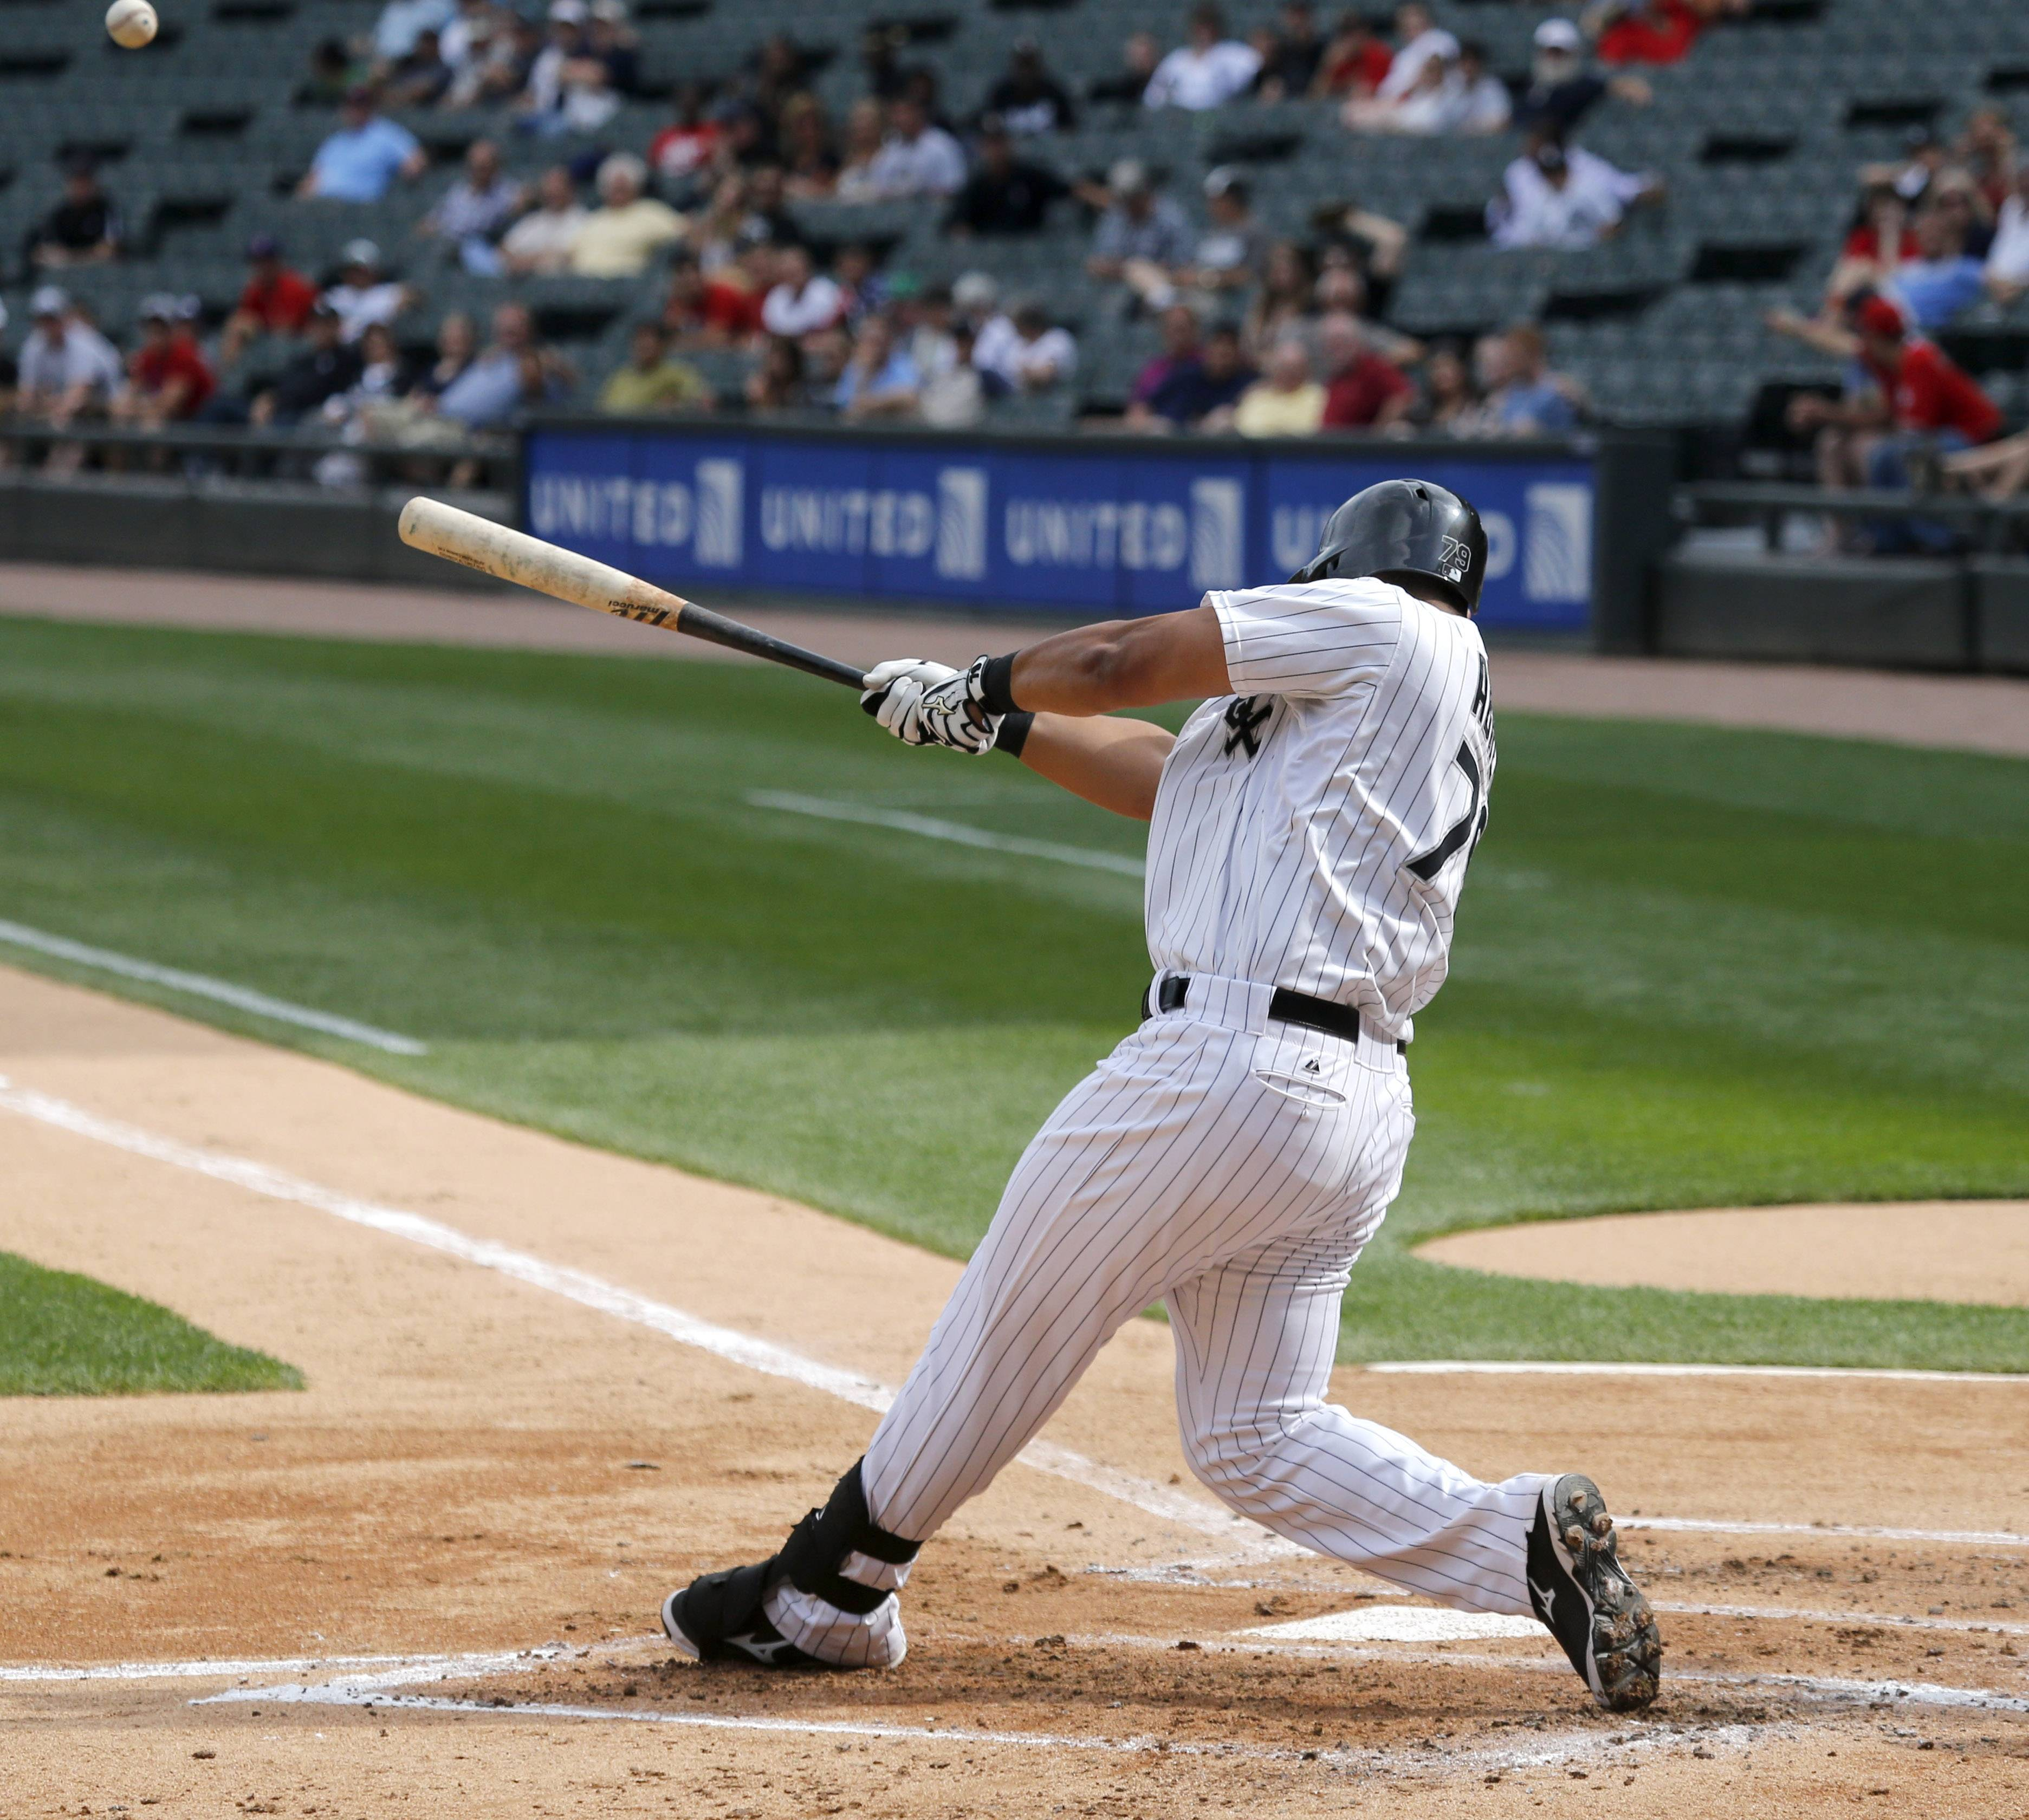 The White Sox's Jose Abreu hits a three-run home run off Los Angeles Angels starting pitcher Garrett Richards, also scoring Gordon Beckham and Adam Eaton, during the first game of a doubleheader Tuesday at U.S. Cellular Field. The Sox lost the first game 8-4.